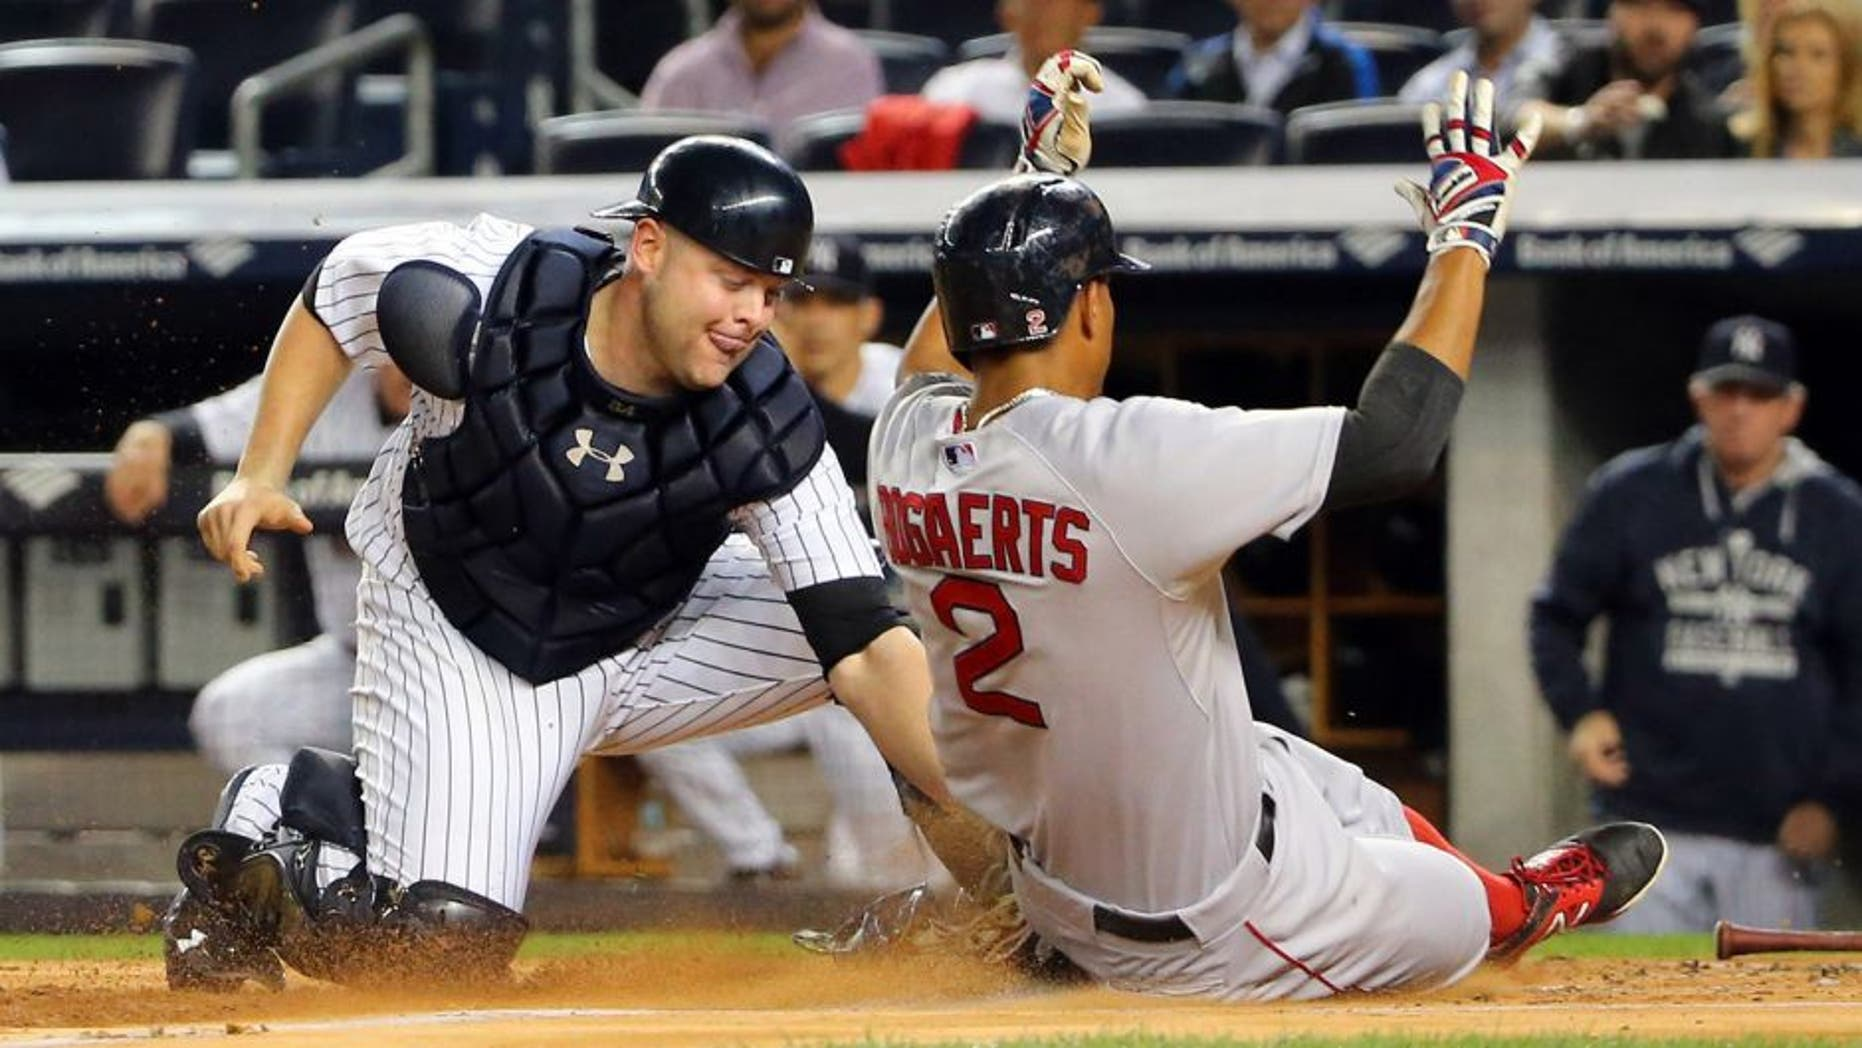 Sep 29, 2015; Bronx, NY, USA; Boston Red Sox shortstop Xander Bogaerts (2) slides safe as New York Yankees catcher Brian McCann (34) is late with the tag during the first inning at Yankee Stadium. Mandatory Credit: Anthony Gruppuso-USA TODAY Sports